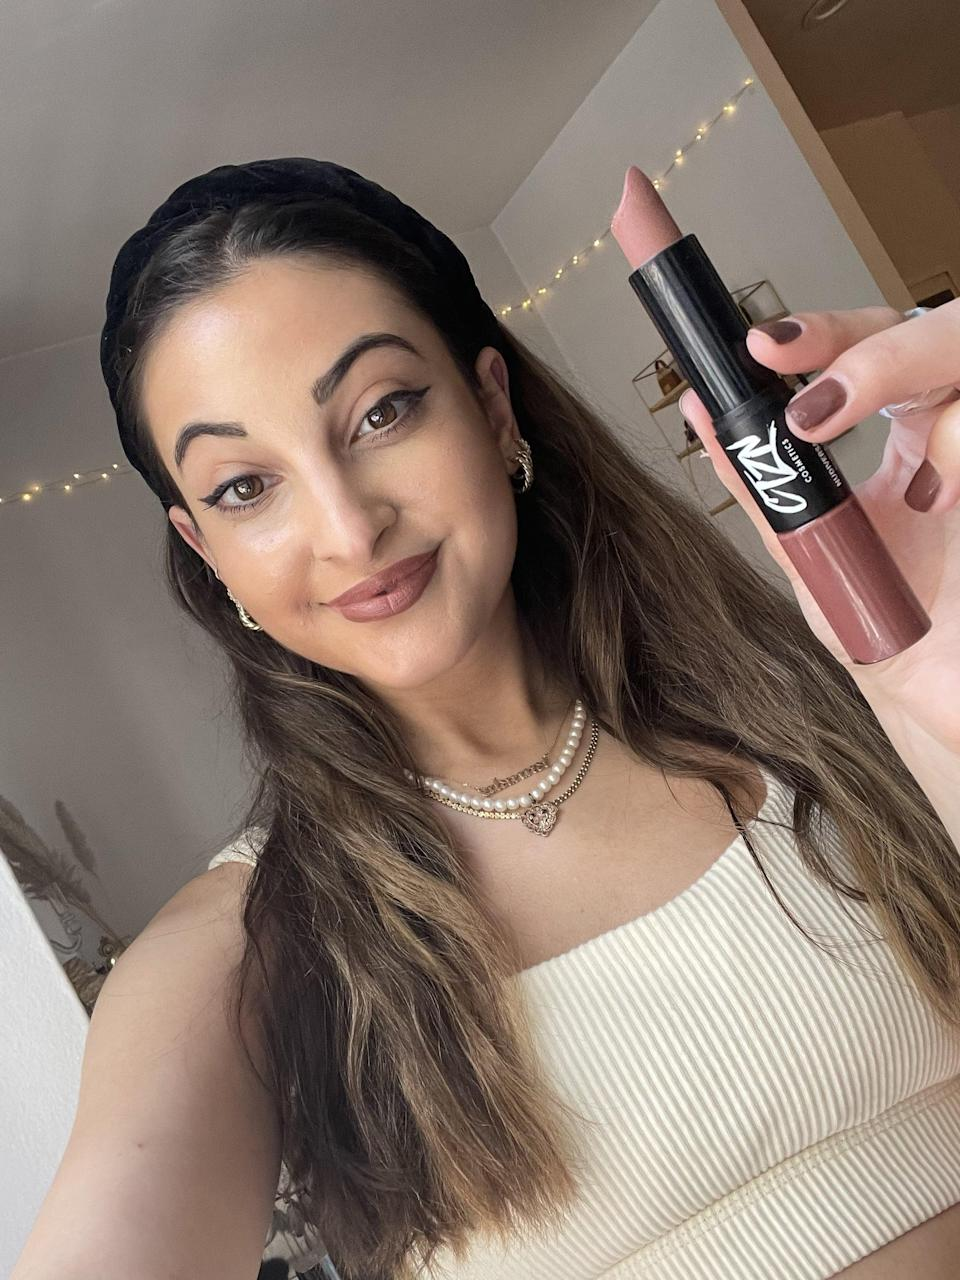 """<p>""""My ride-or-die lip color for fall for the past couple of years has been the <span>Nudiversal Lip Duo in Mykonos</span> ($25), a creamy, nude brown combo from Ctzn. The matte end is super pigmented and leaves behind a powdery (but non-cakey!) finish that instantly makes my makeup feel cozy and complete. To level up my lip look at night, I like to layer the gloss on top for extra sparkle and shine. It's the best $25 you'll spend this fall, I can promise you that."""" - Alanna Martine Kilkeary, assistant managing editor, Makeup.com</p>"""